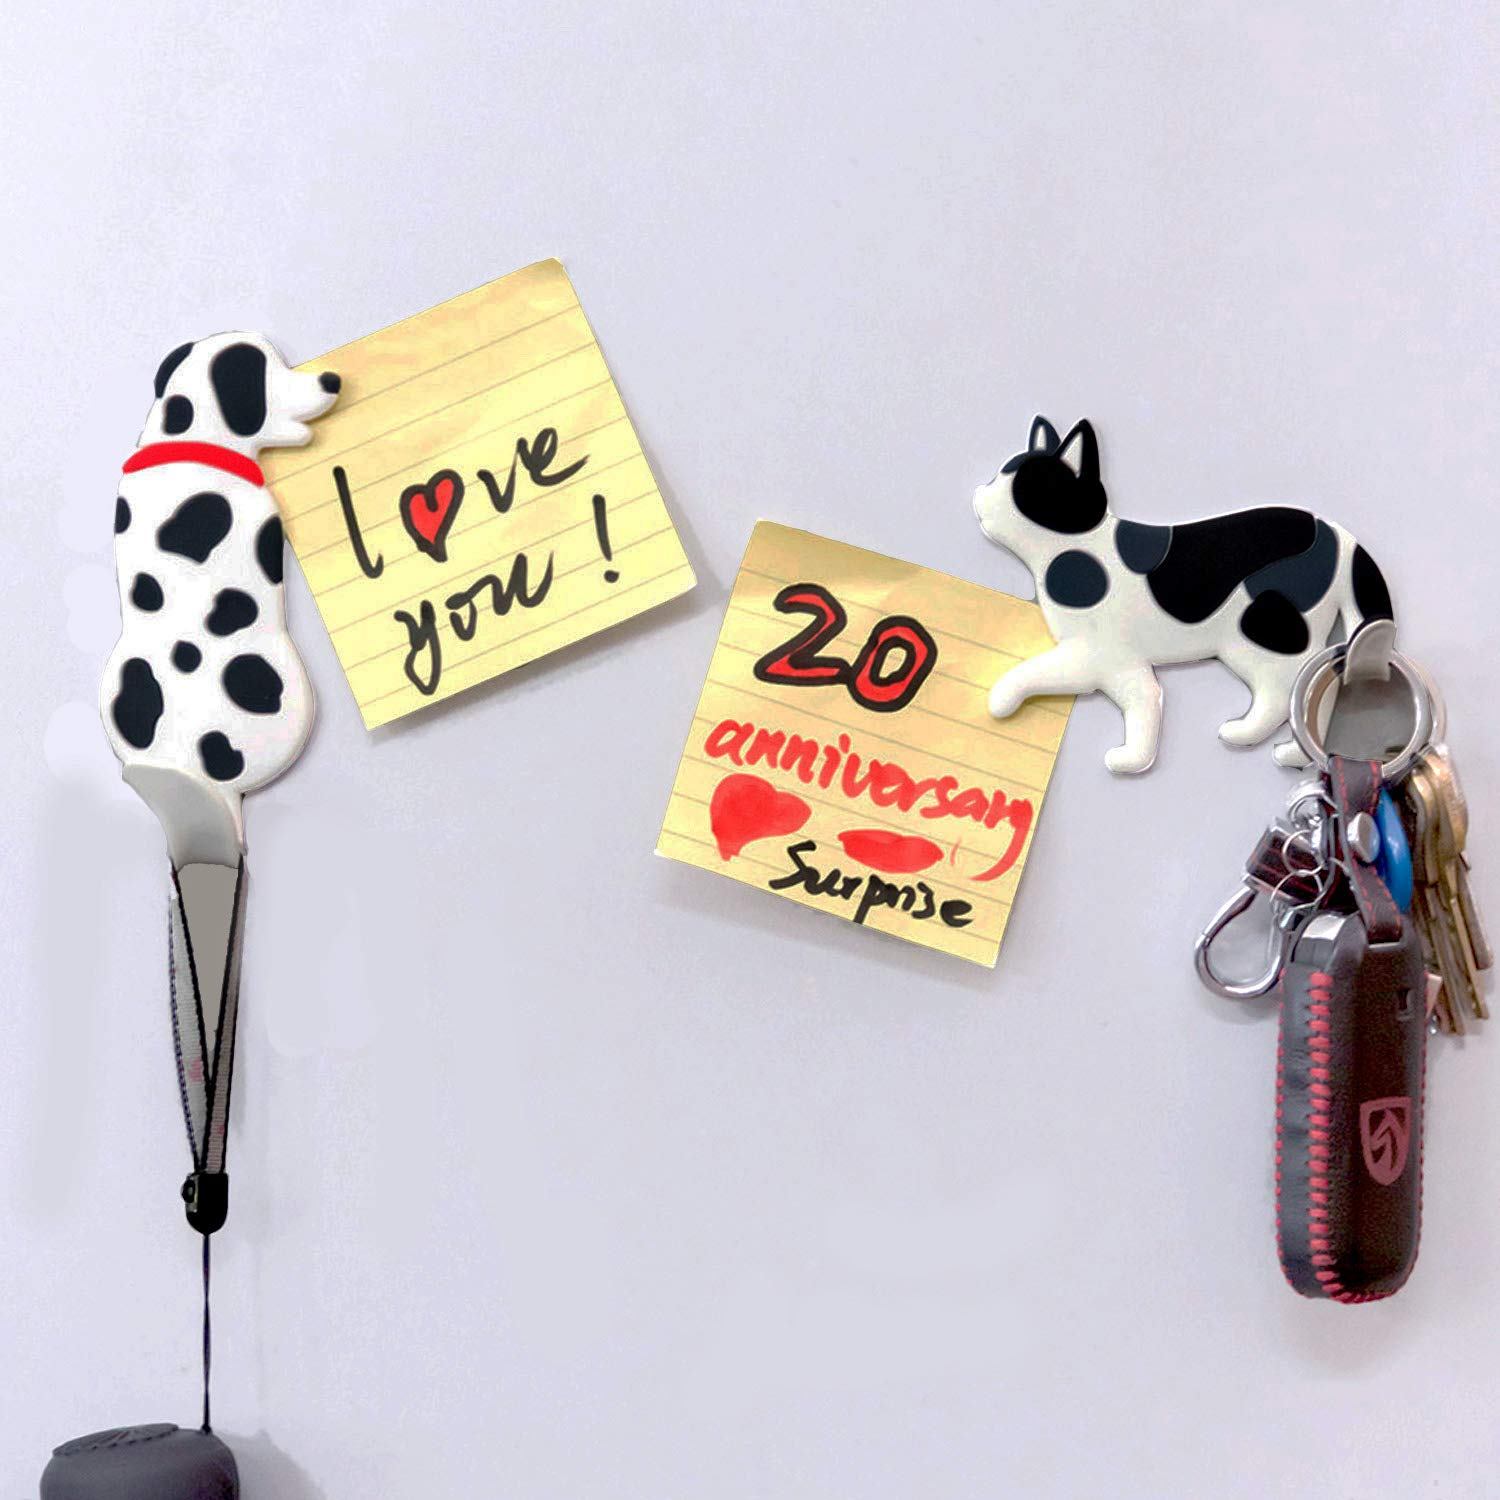 ColorCoral Fridge Magnets Whiteboard Magnets Refrigerator Magnet Fridge Stickers Multifunction Hanging Hook for Home Office Noticeboard Cabinets White Boards Door